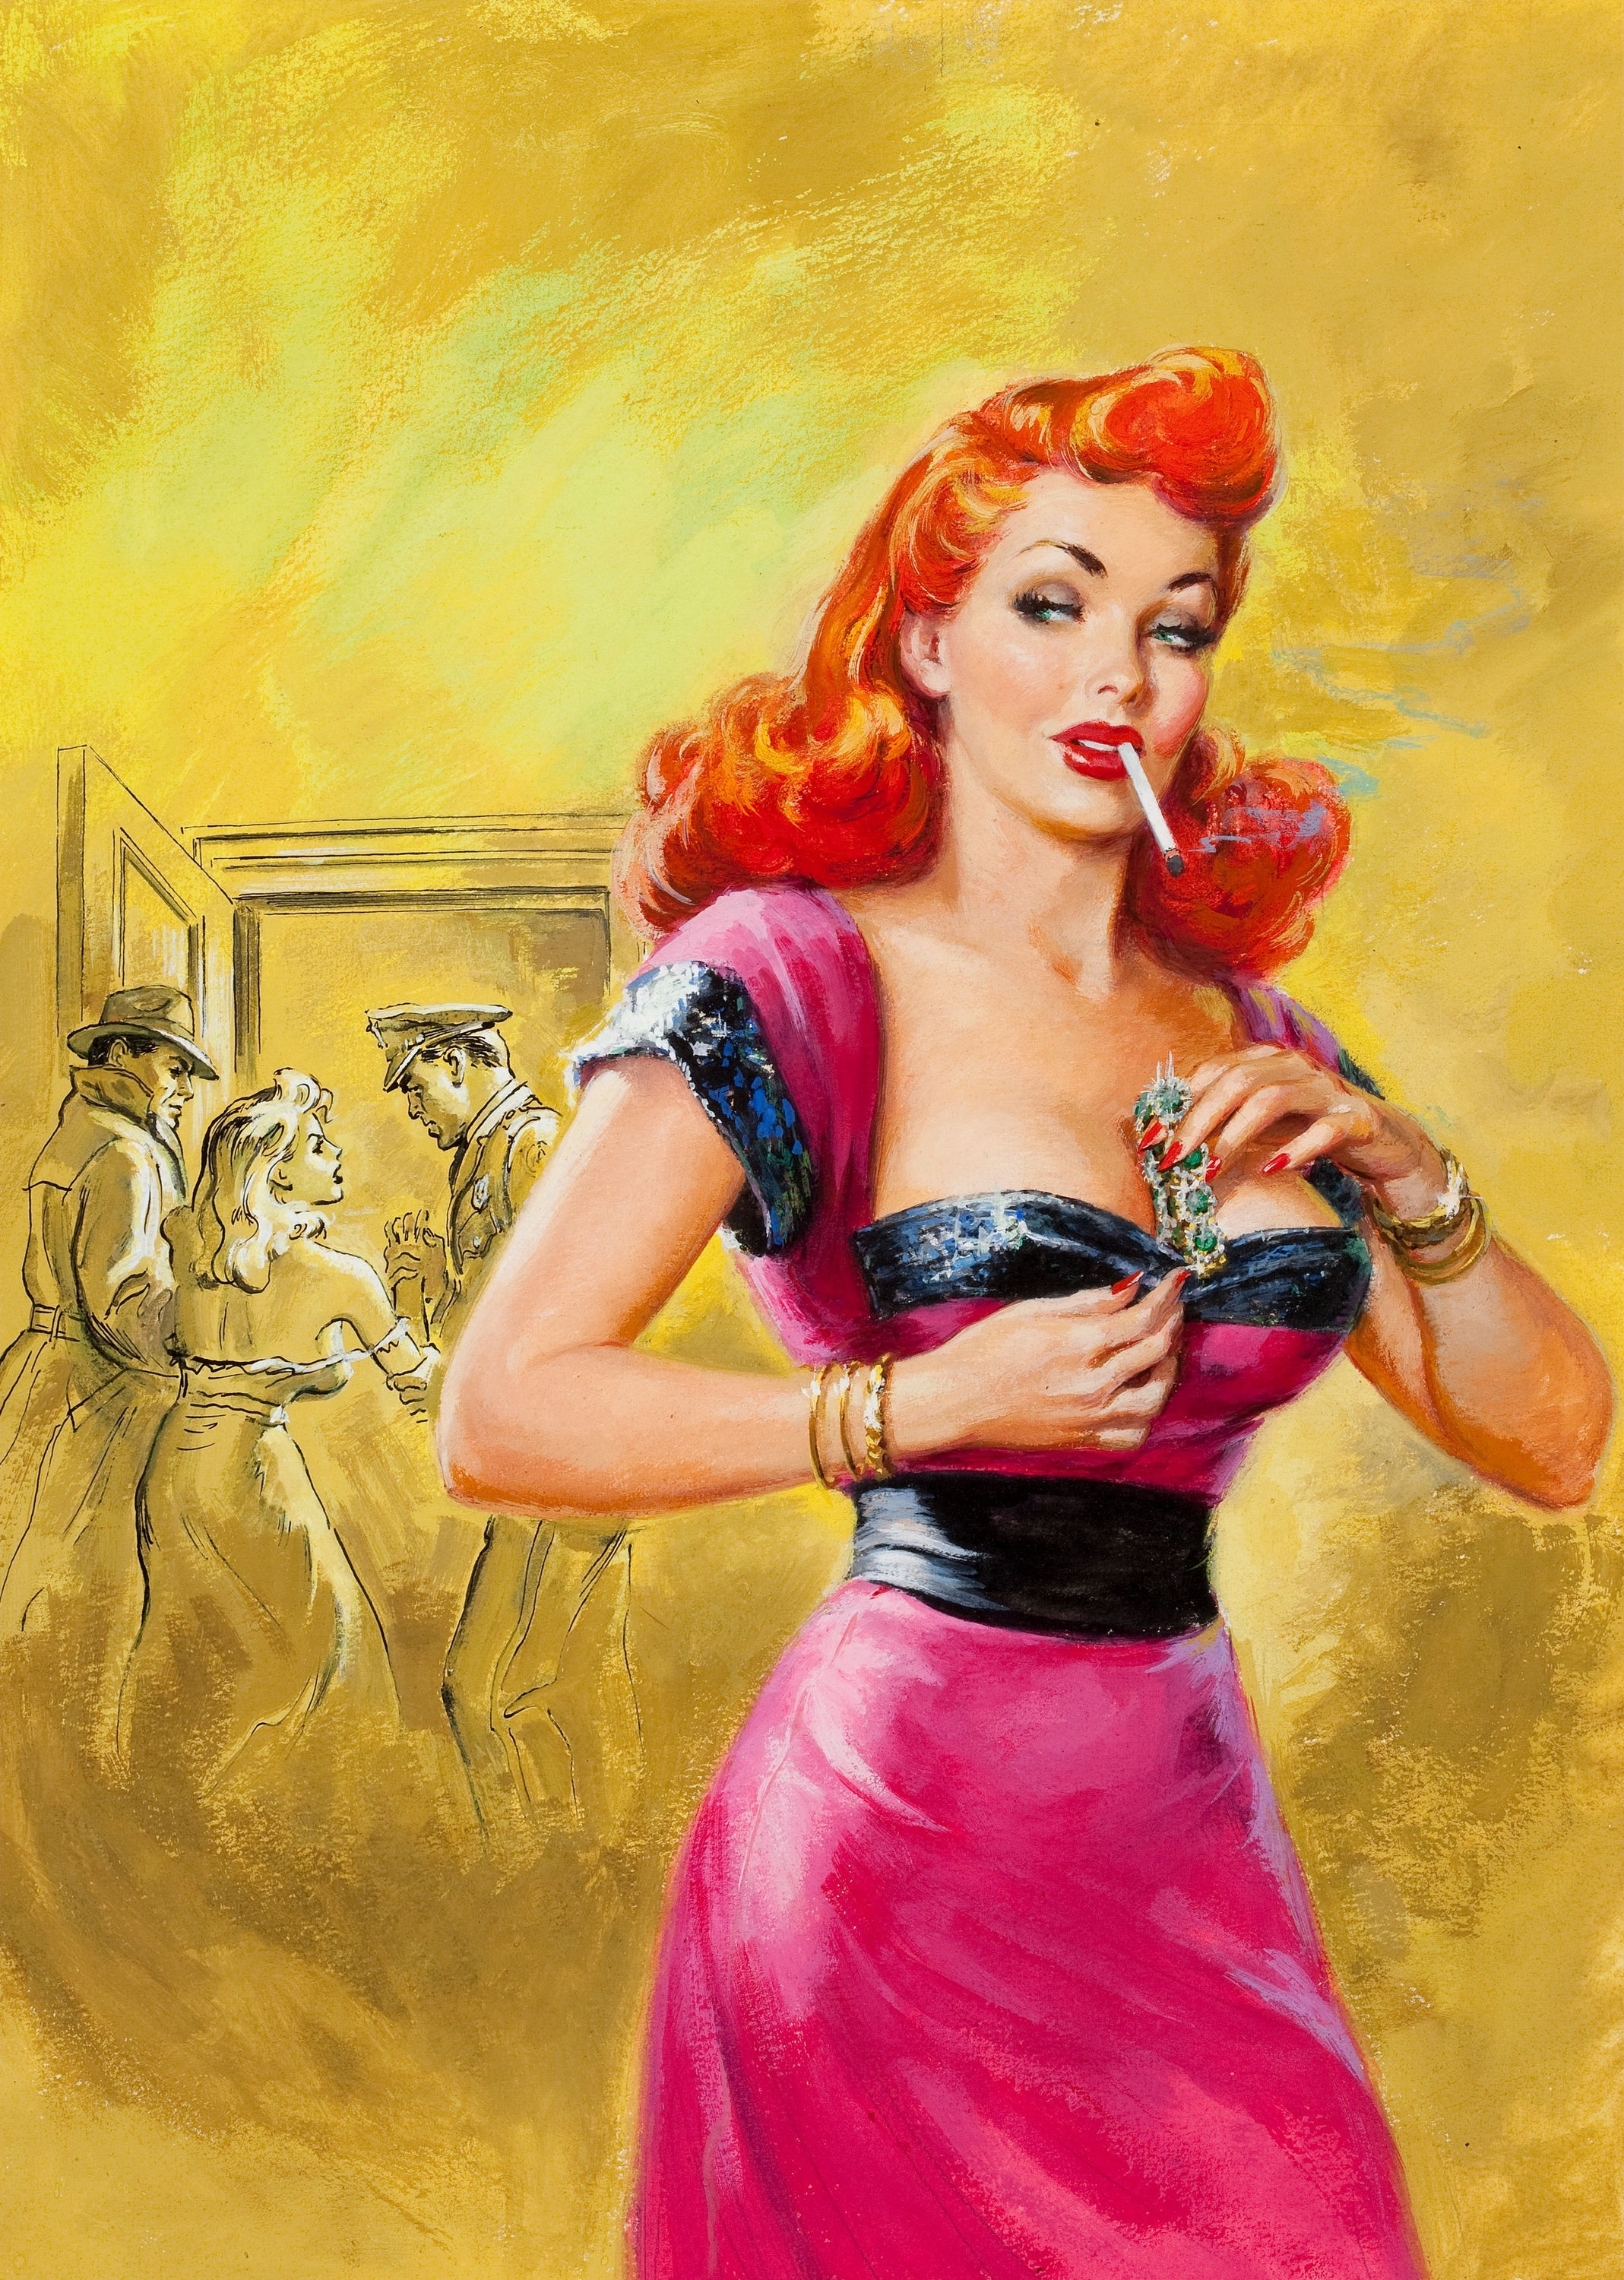 Pin up Cover Wallpaper 2137x3000 Pinup Cover Detective July 1962 2137x3000